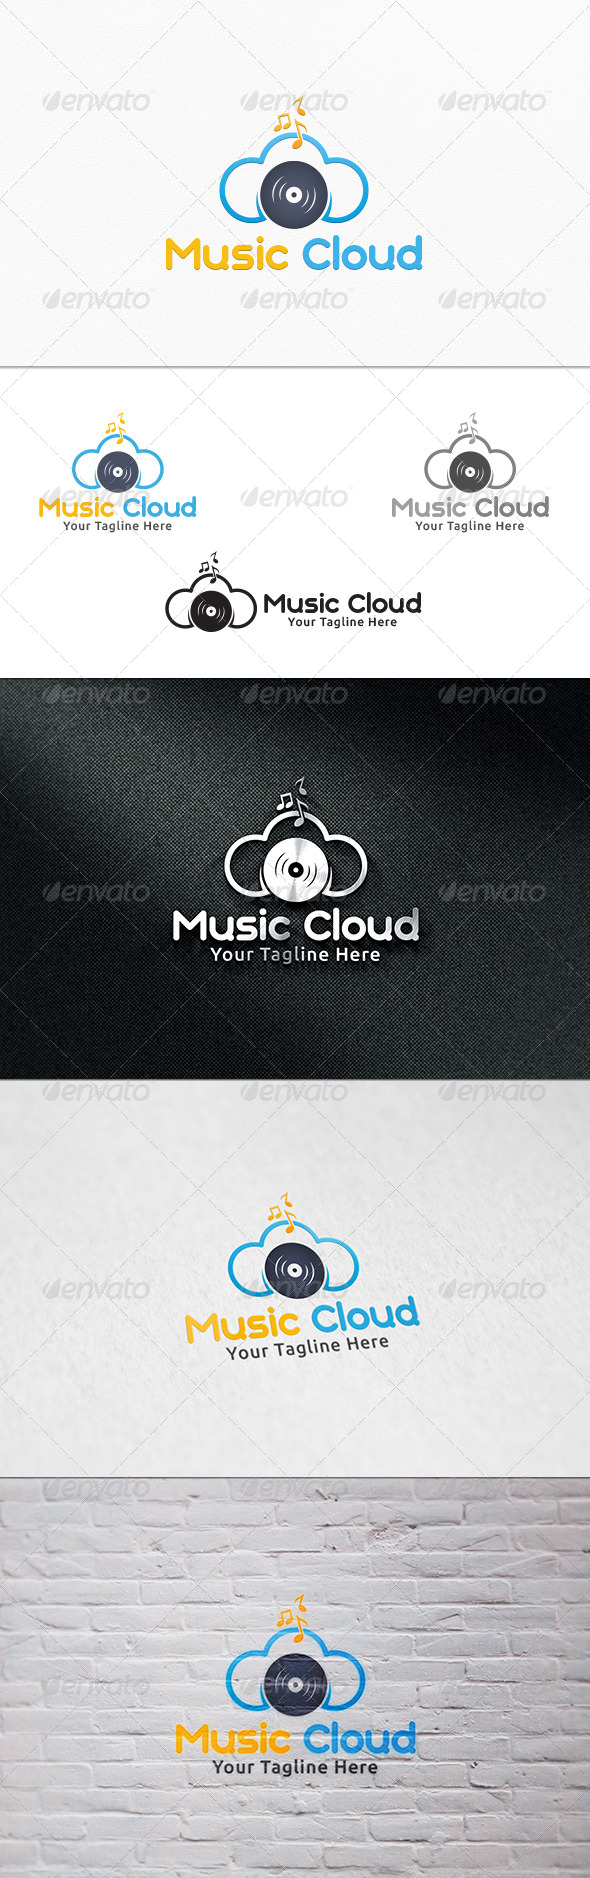 Music Cloud - Logo Template